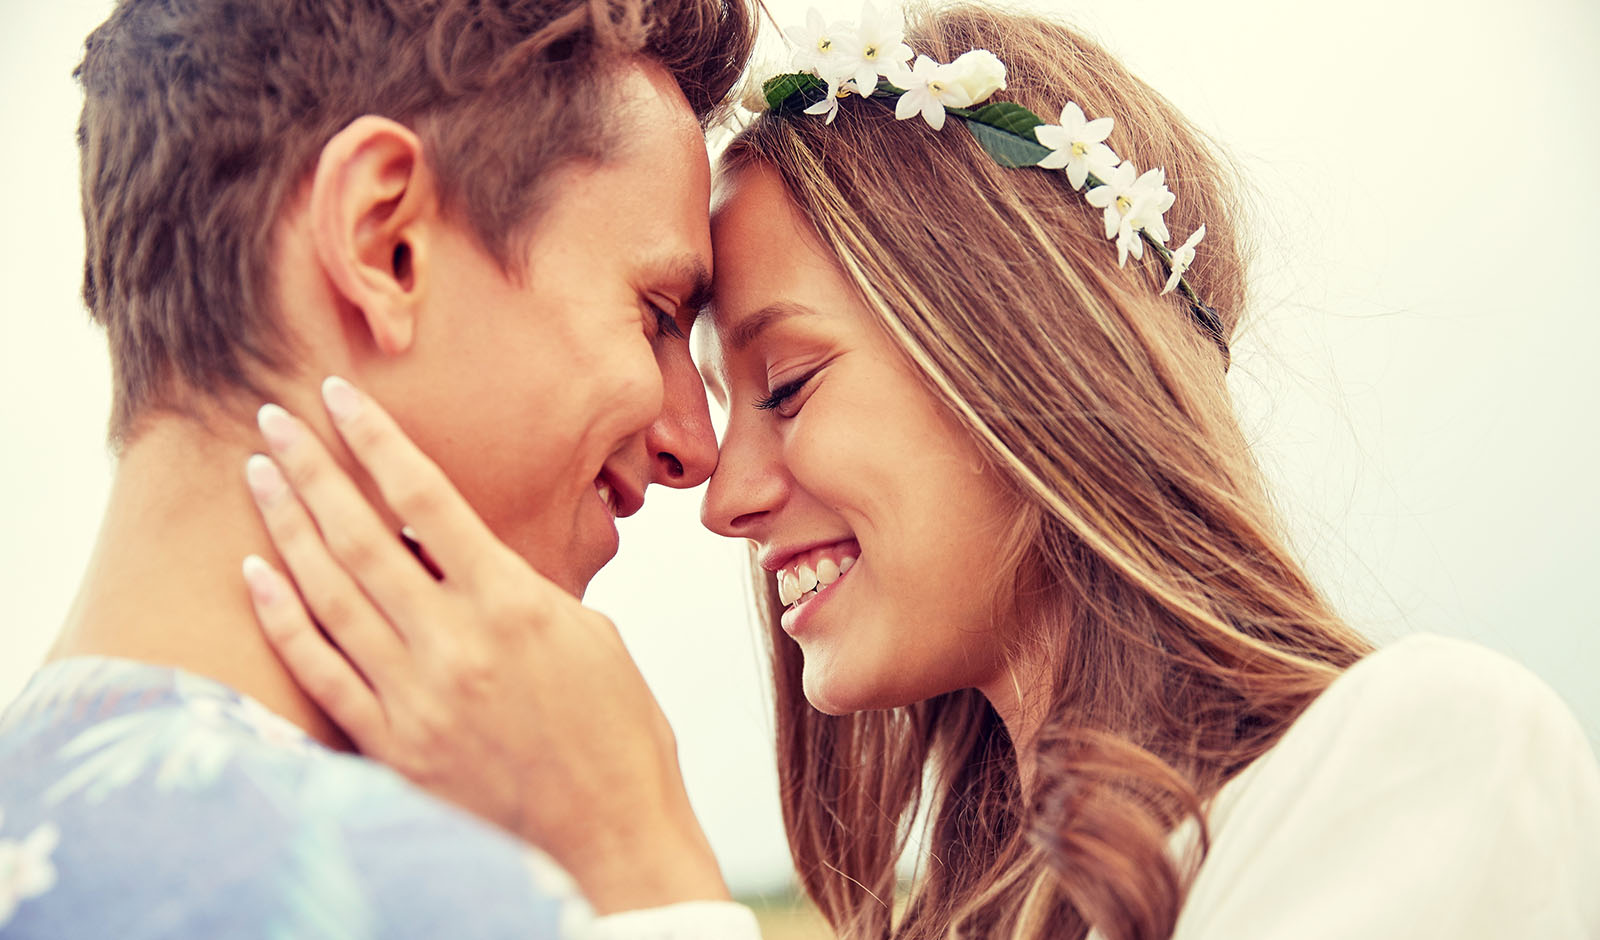 makeup-and-hair-mistakes-to-avoid-for-your-wedding-happy-couple-with-heads-touching